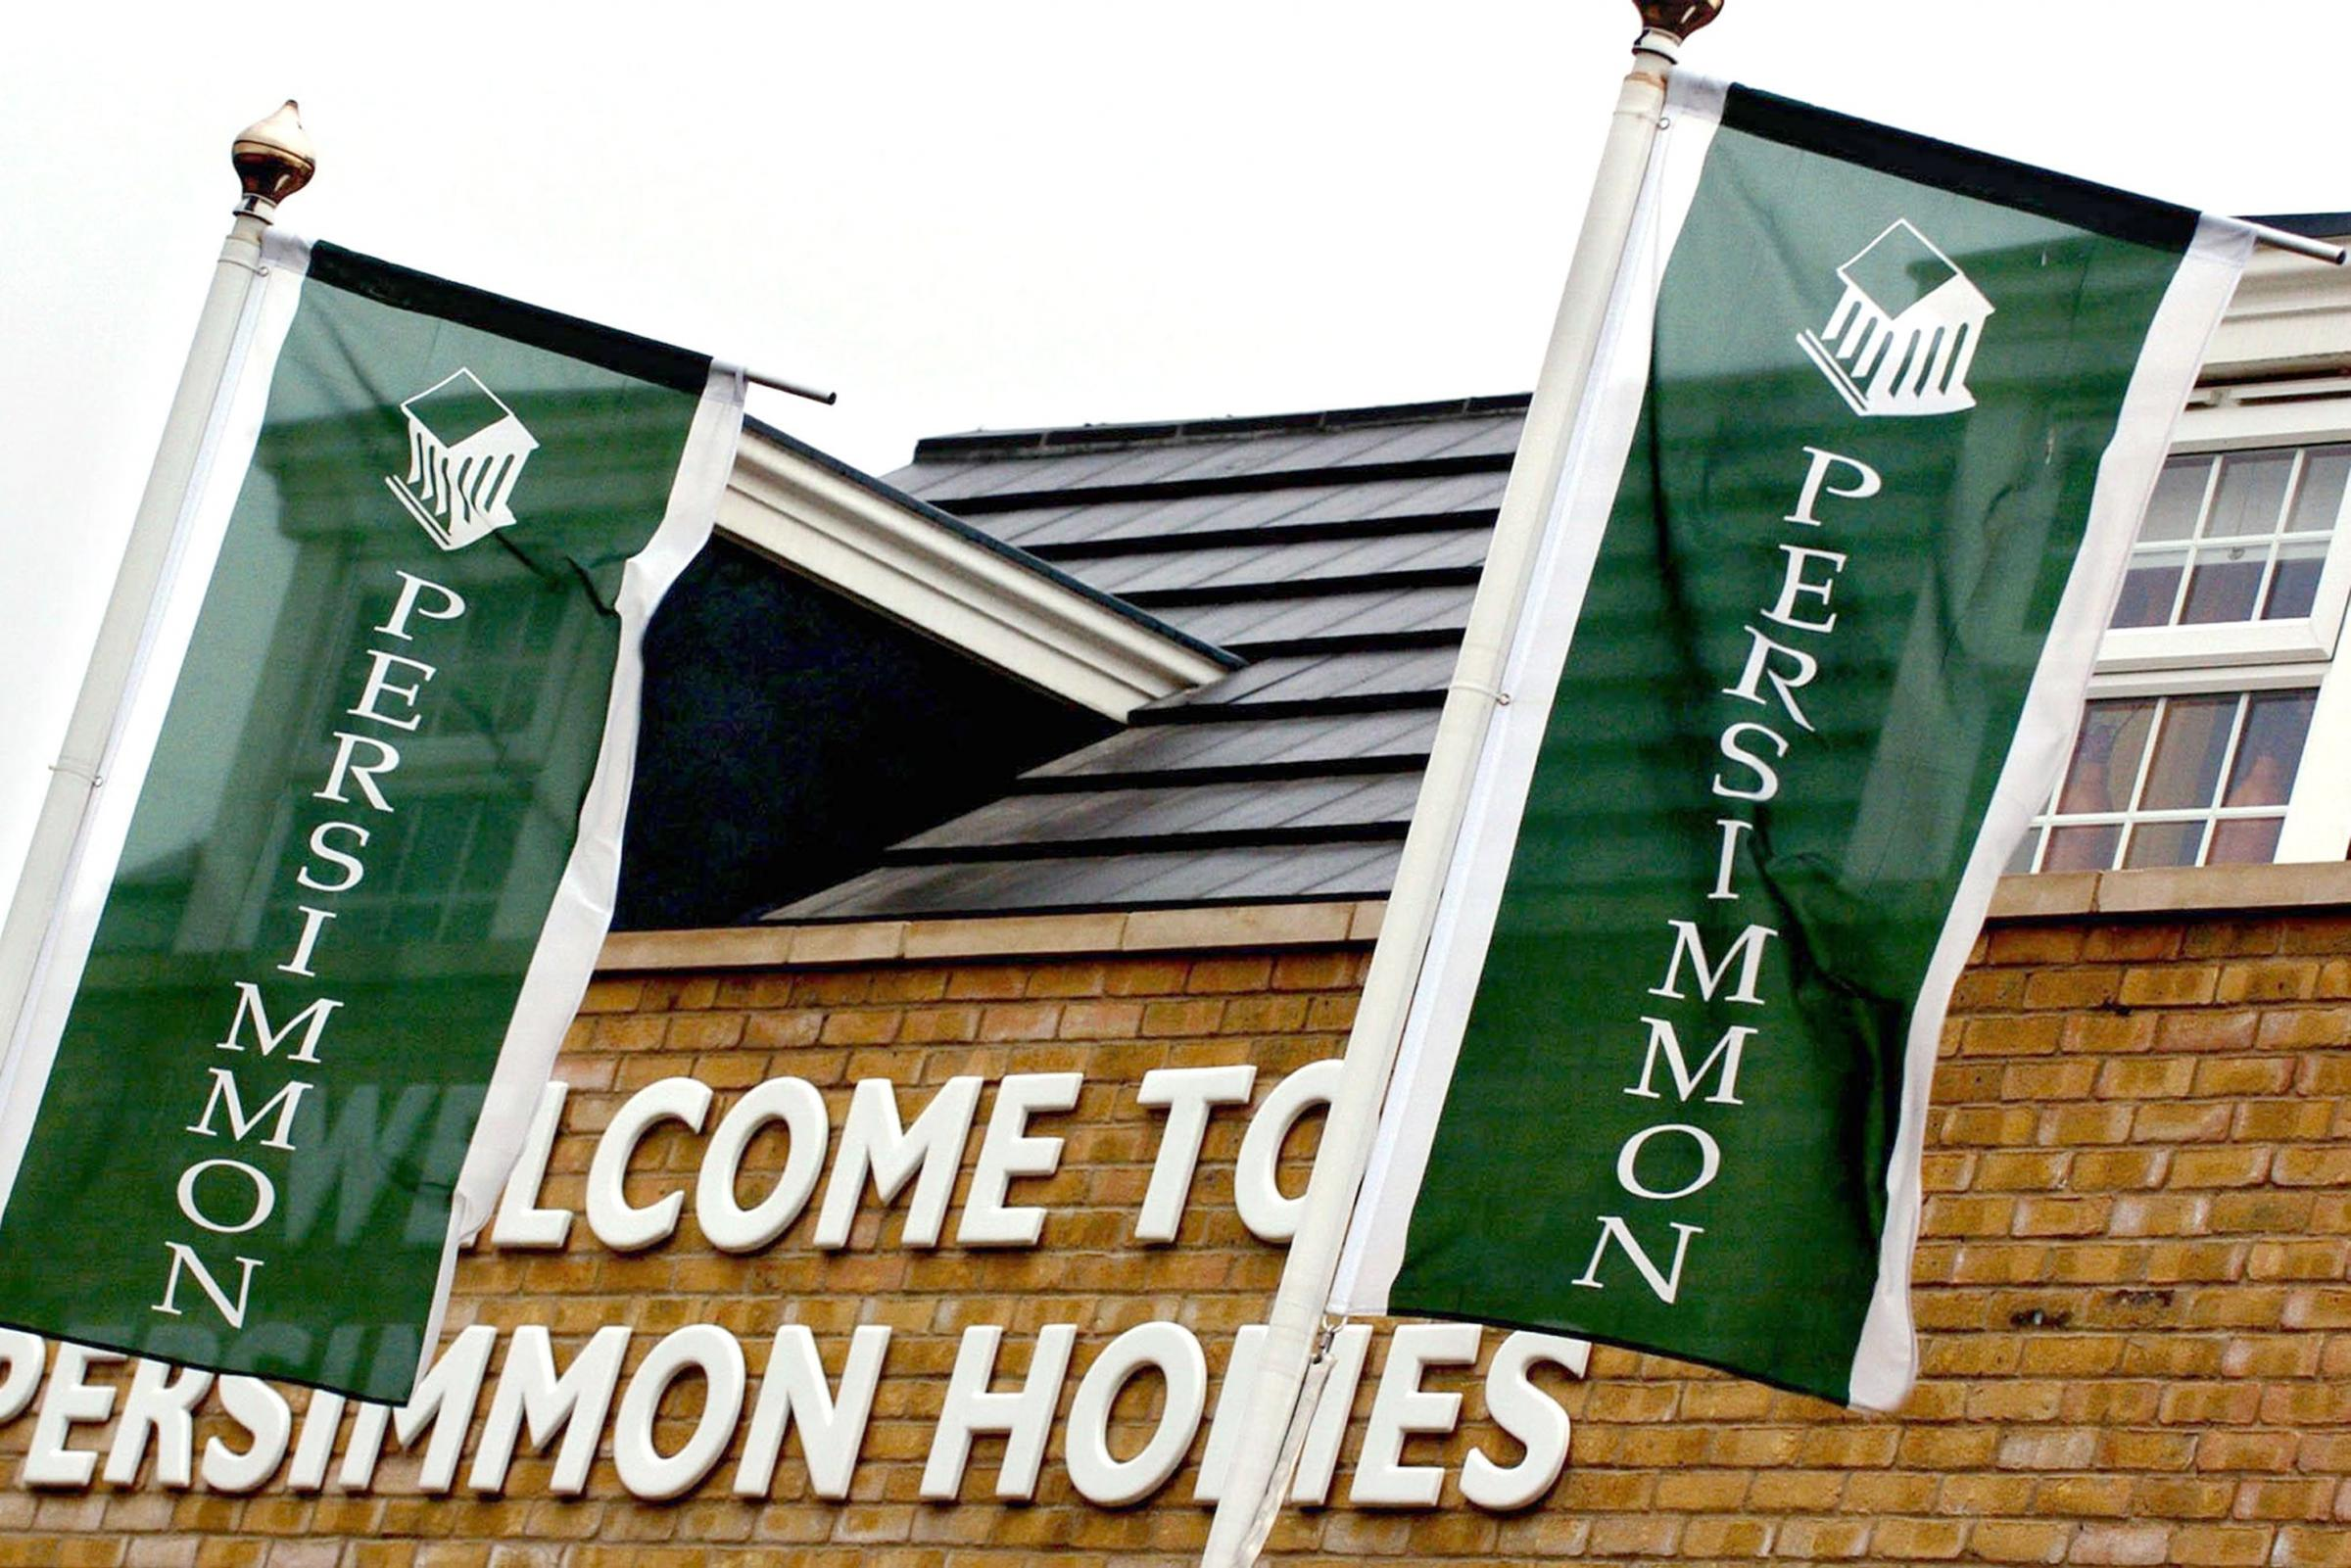 Persimmon boss to leave over £75m pay deal furore